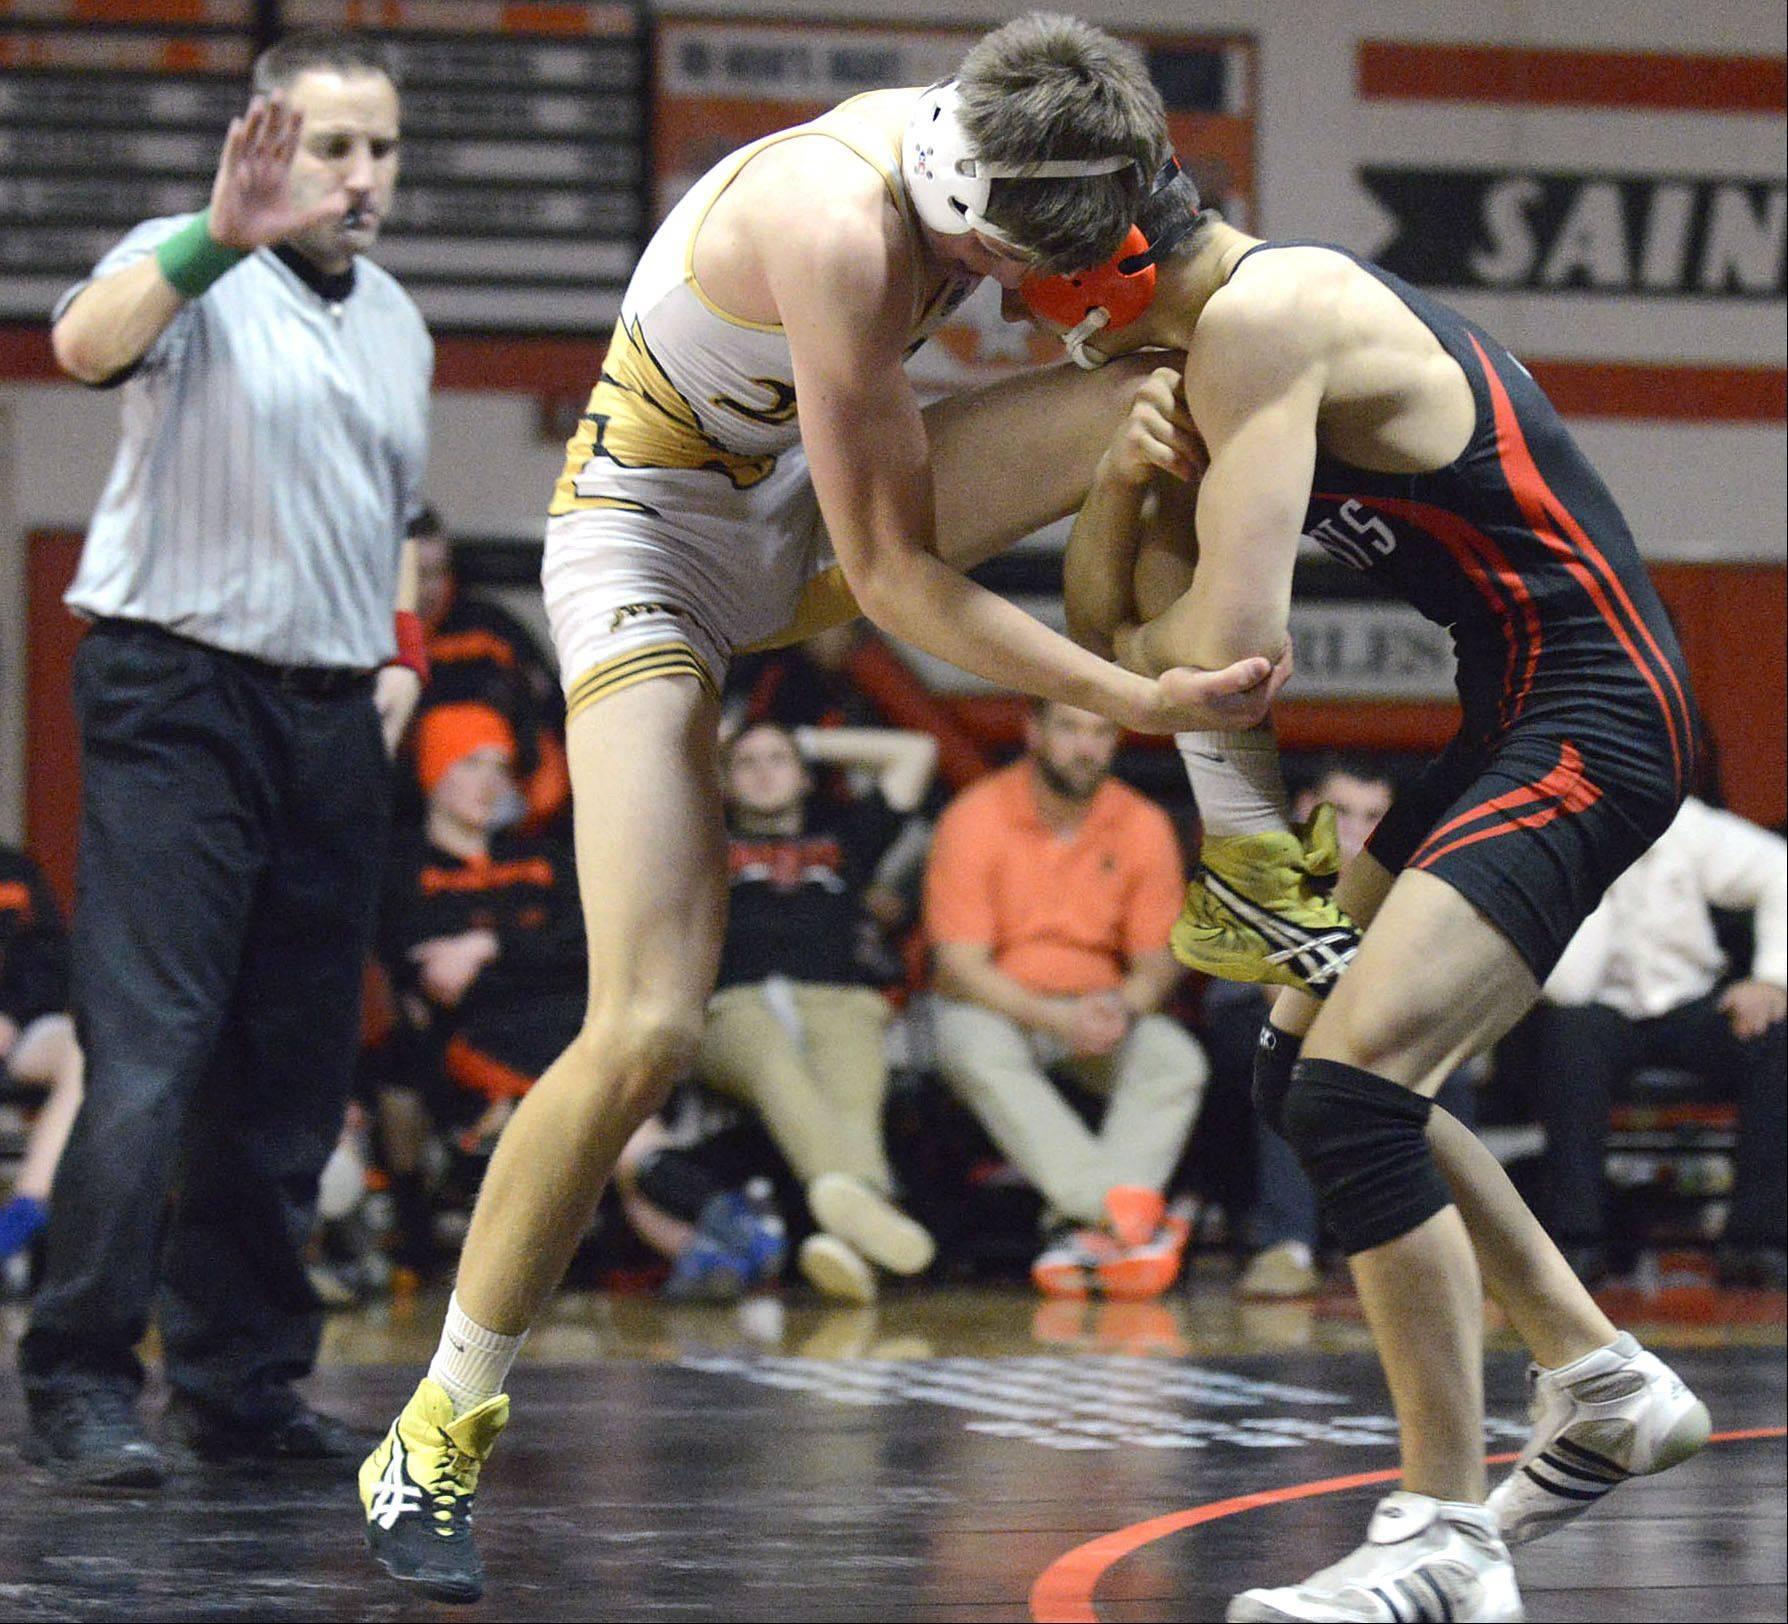 St. Charles East's Ryan Valesh takes the 132 pound match vs. Metea Valley's David Veitch on Thursday, December 19.